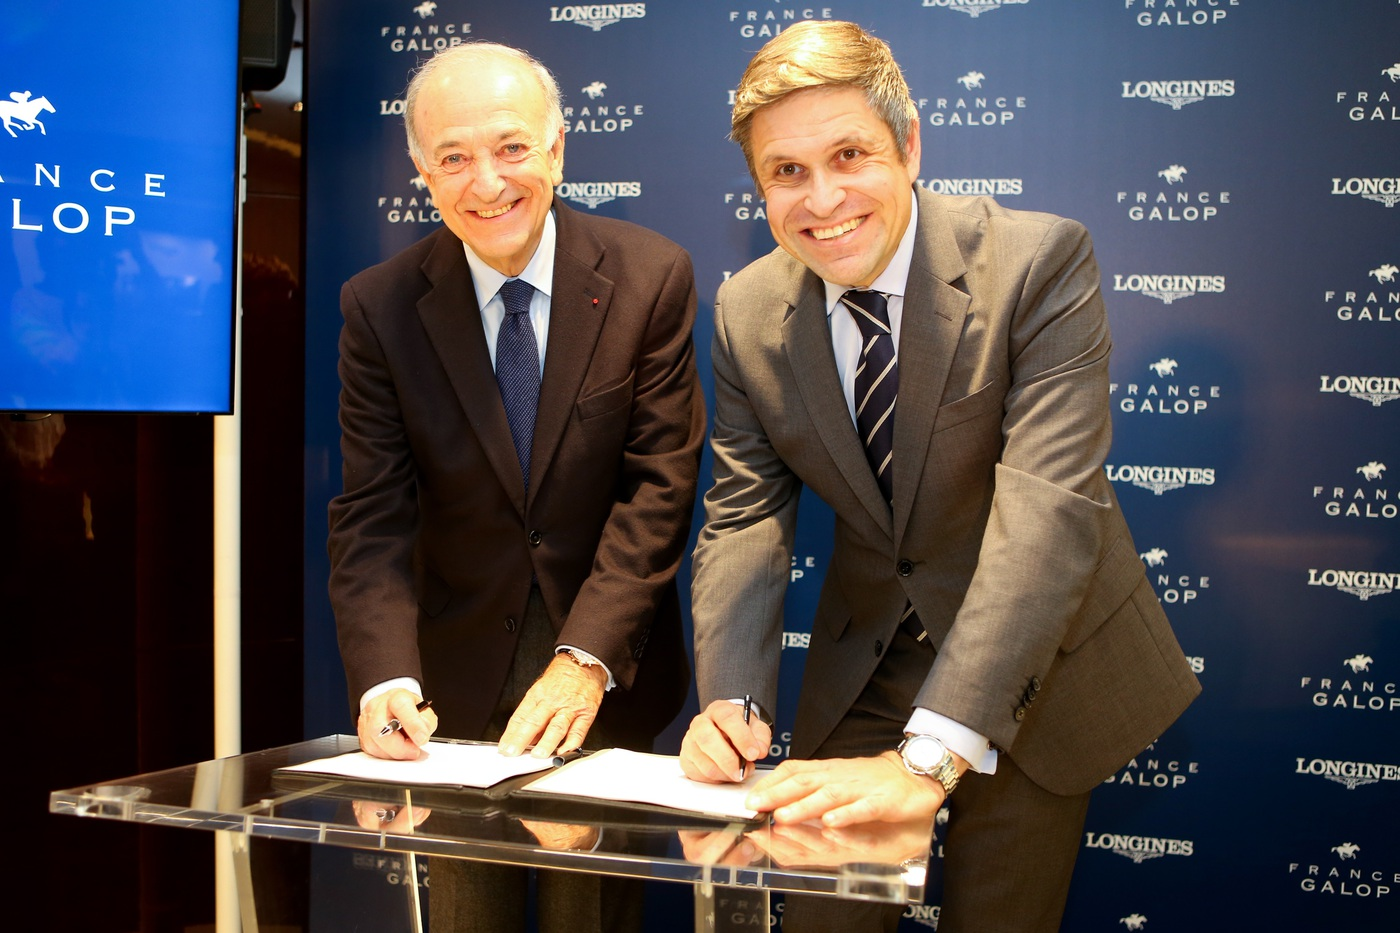 Longines Flat Racing Event: Longines Announces the Renewal of its Partnership with France Galop 4